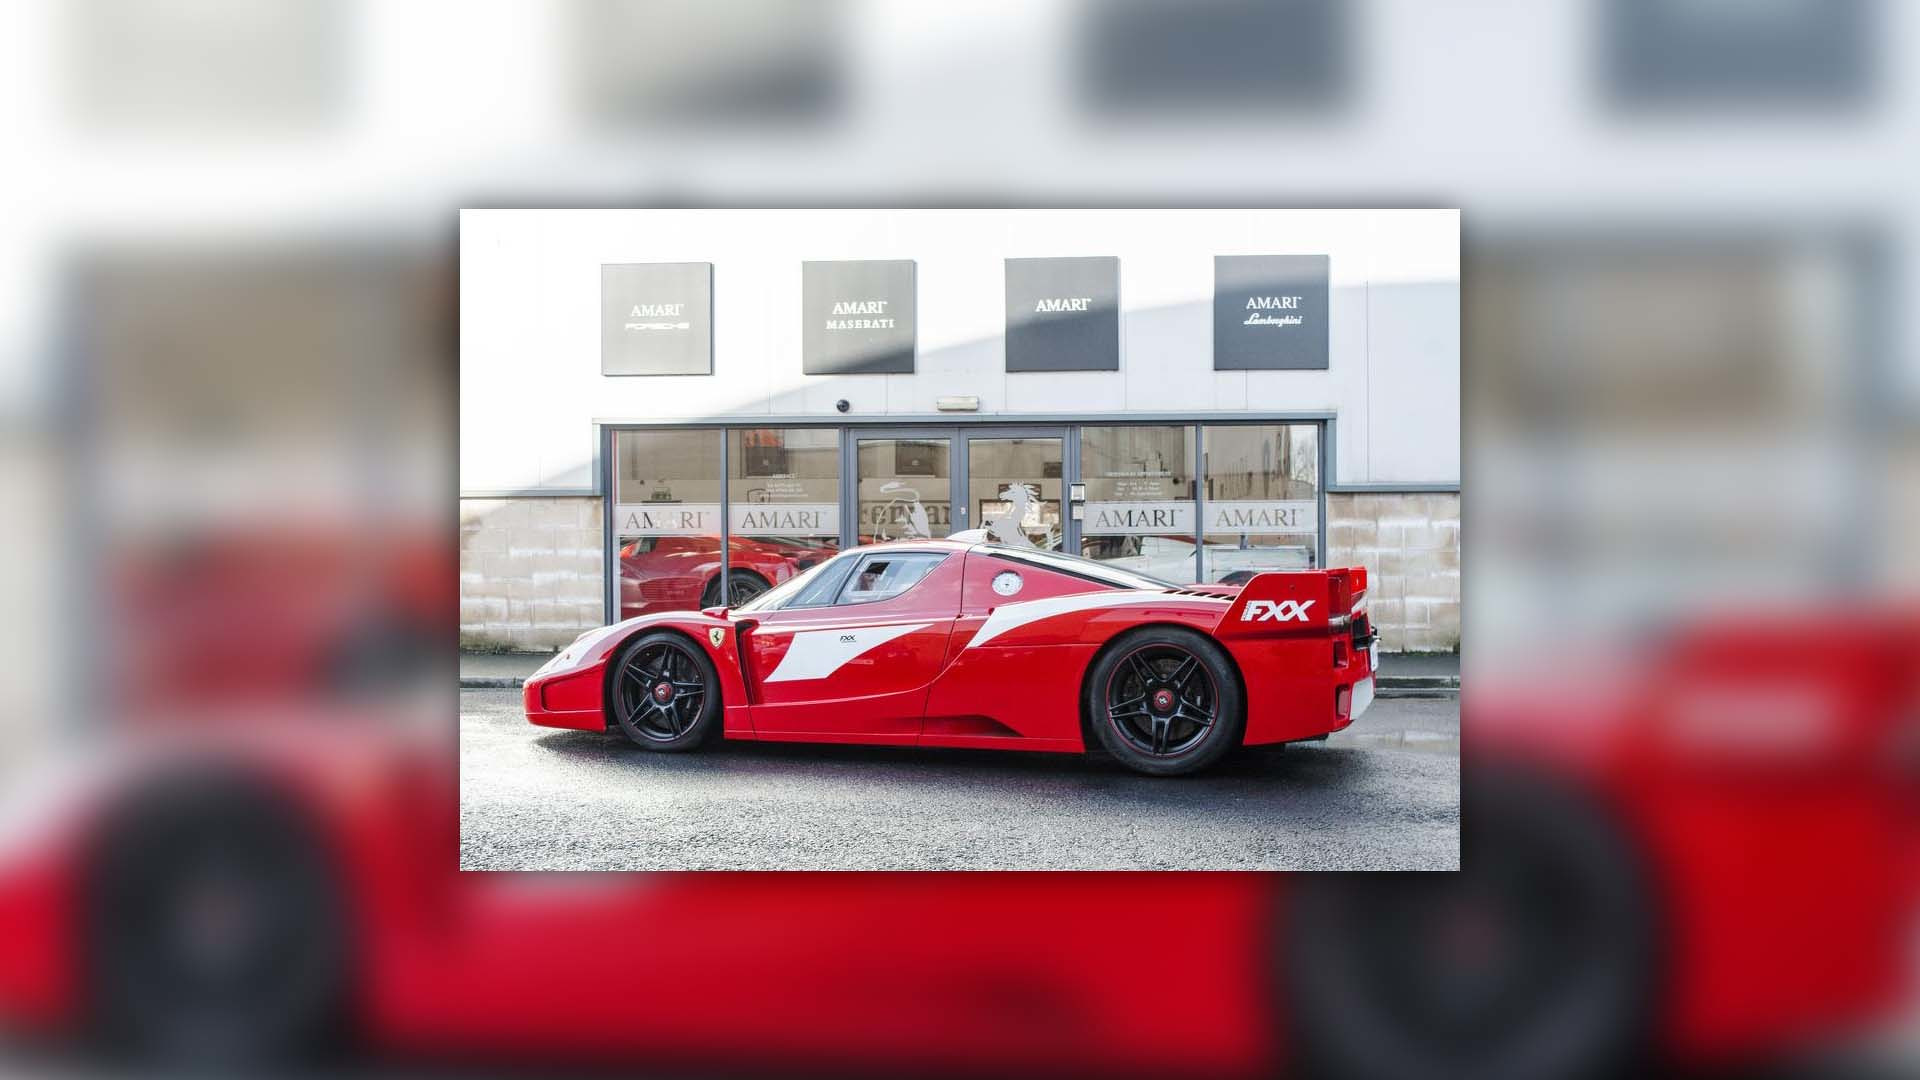 The World S Only Street Legal Ferrari Enzo Fxx Is For Sale